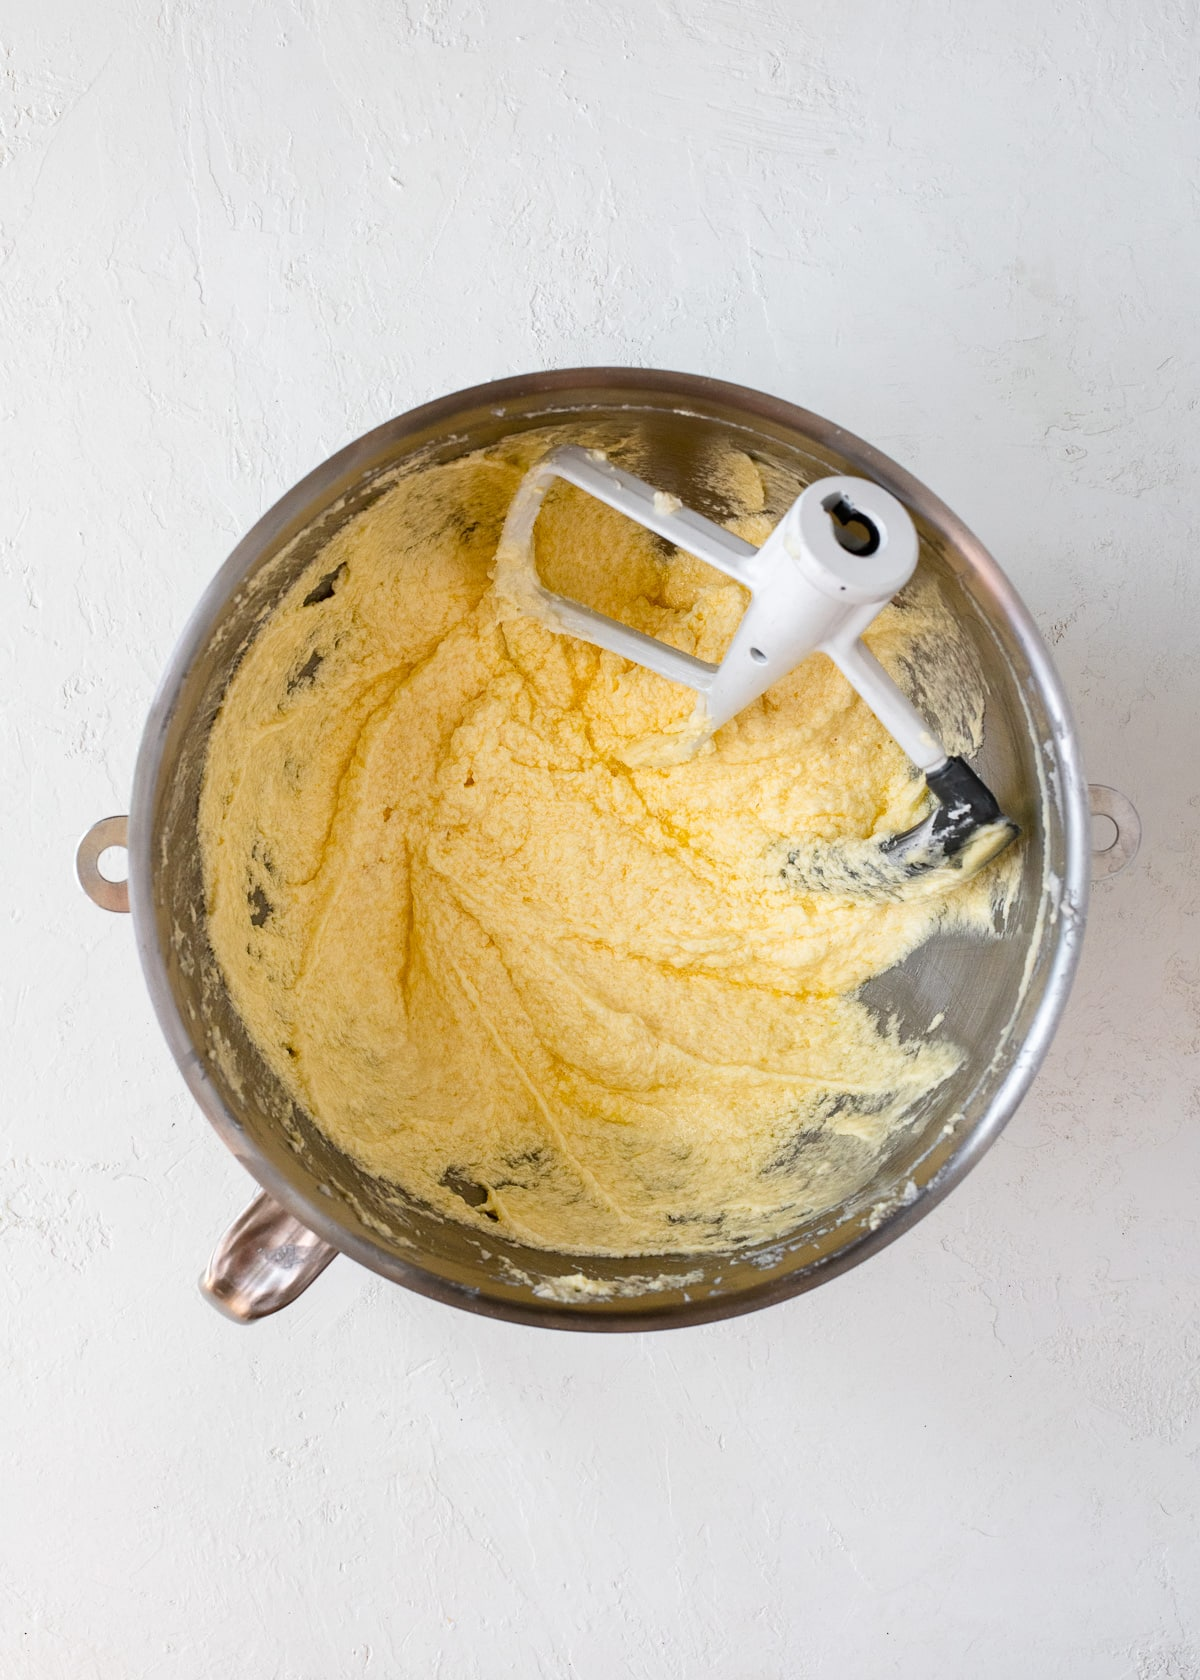 Overhead view of eggs being beaten into butter and sugar in a mixing bowl.